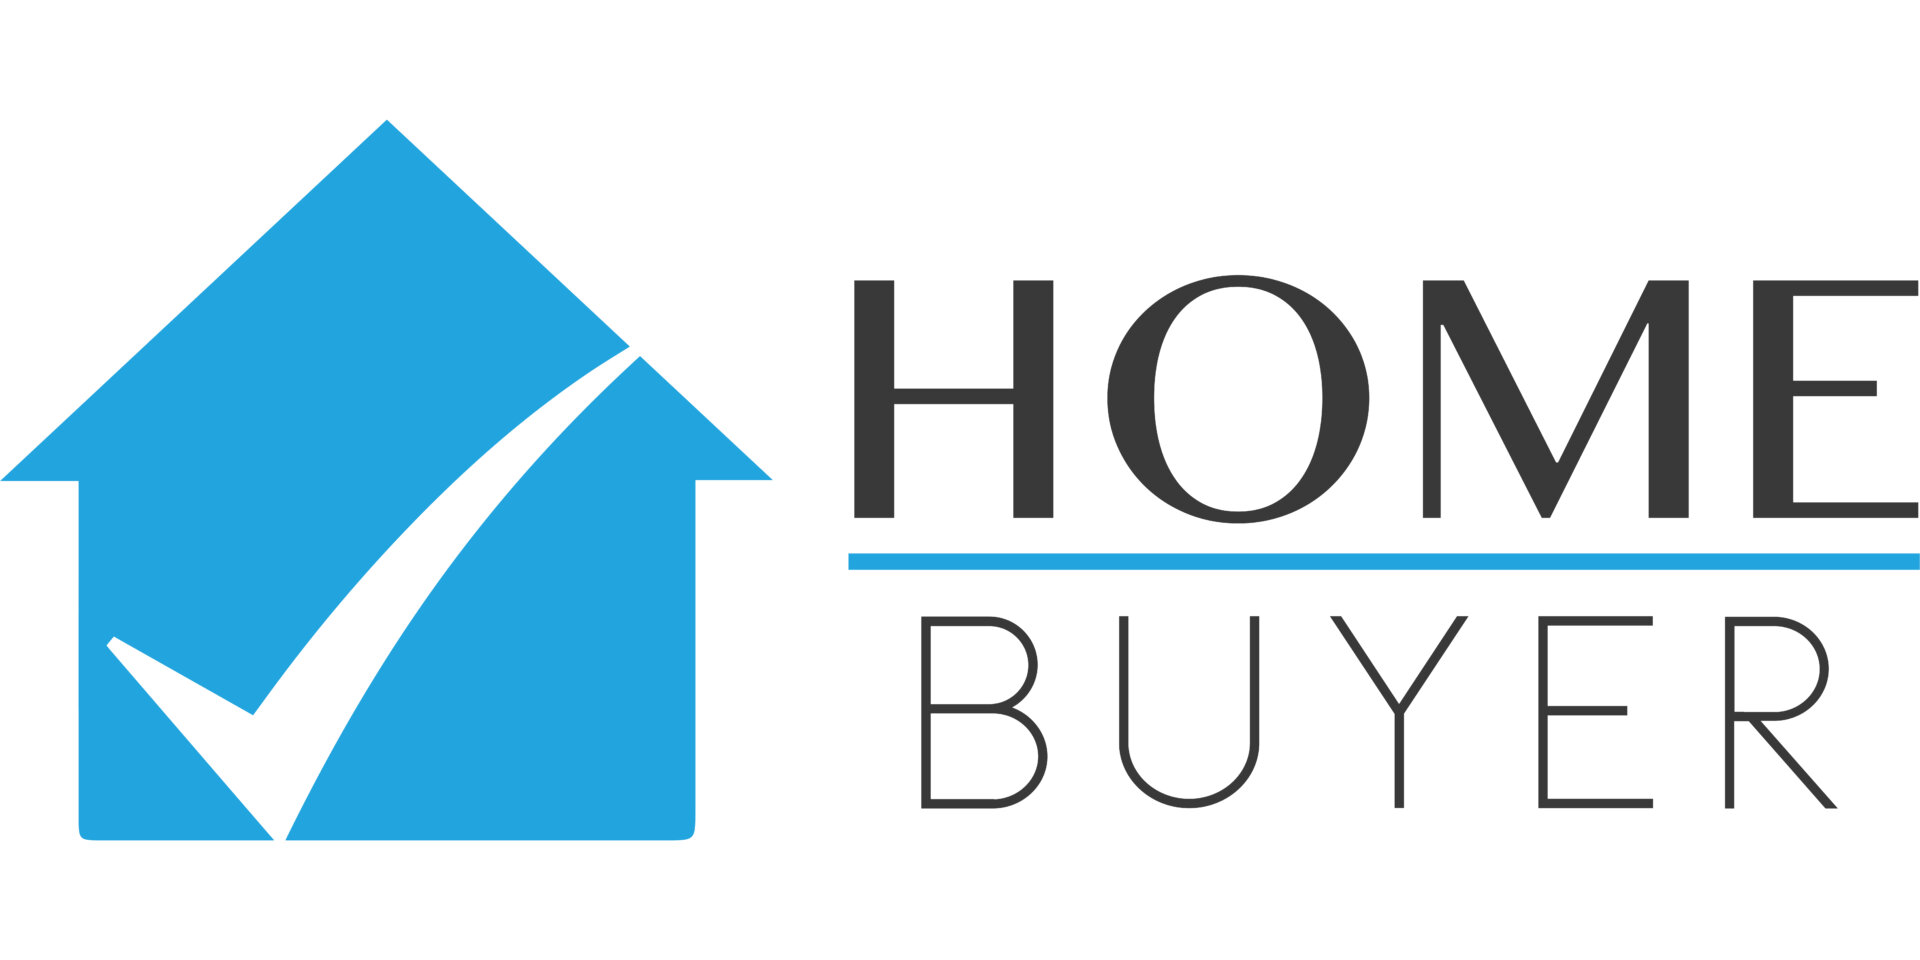 The Easy Home Buyer logo